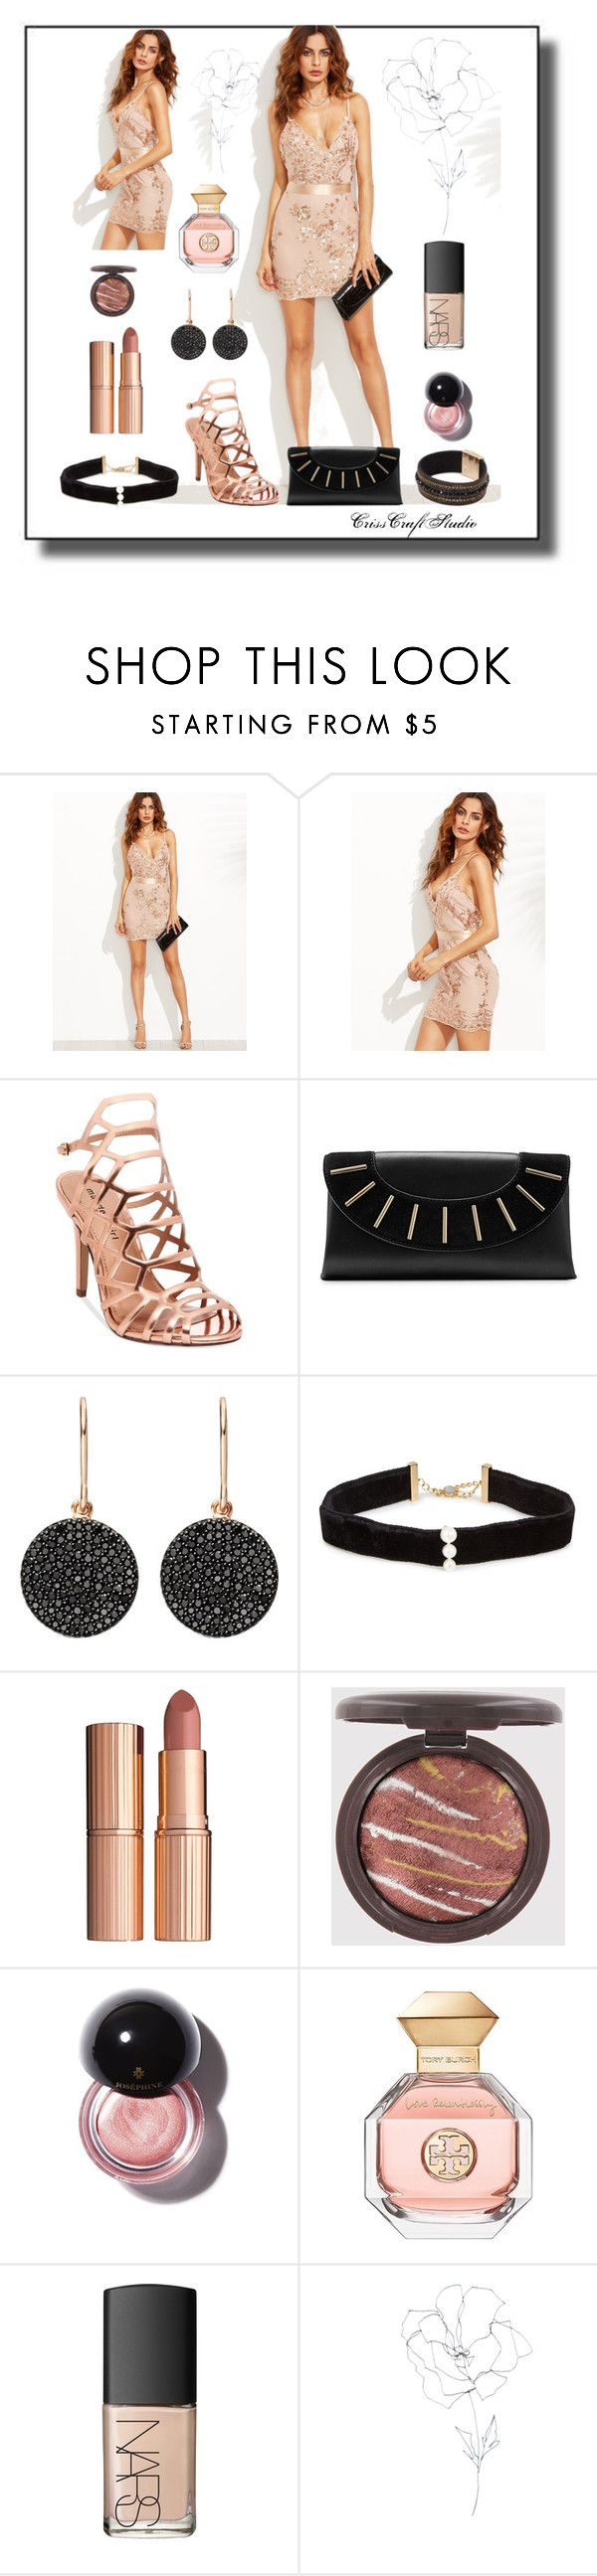 """""""Fashion"""" by crisscraftstudio ❤ liked on Polyvore featuring Madden Girl, Diane Von Furstenberg, Astley Clarke, Anissa Kermiche, Charlotte Tilbury, Tory Burch, NARS Cosmetics, Blume and Kate Spade"""